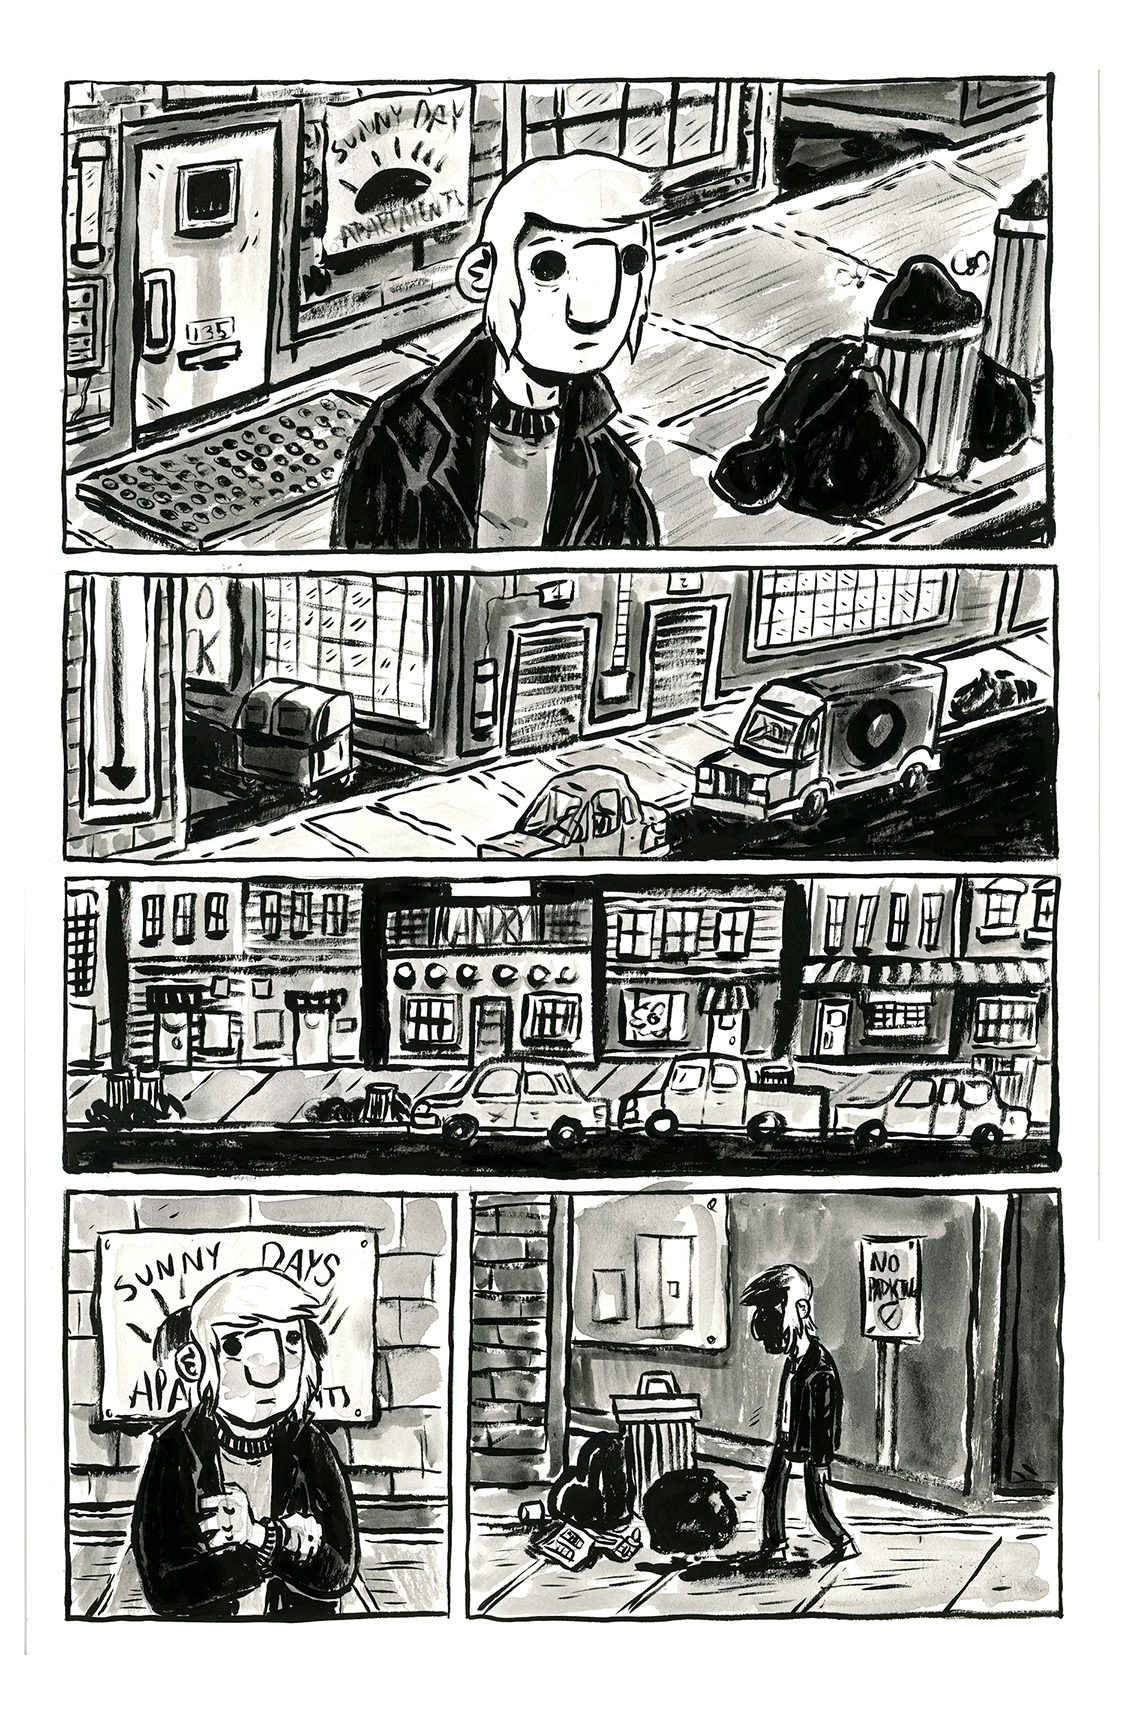 Hey, Come Here, pg 2, by Sam Costello and Claire Connelly